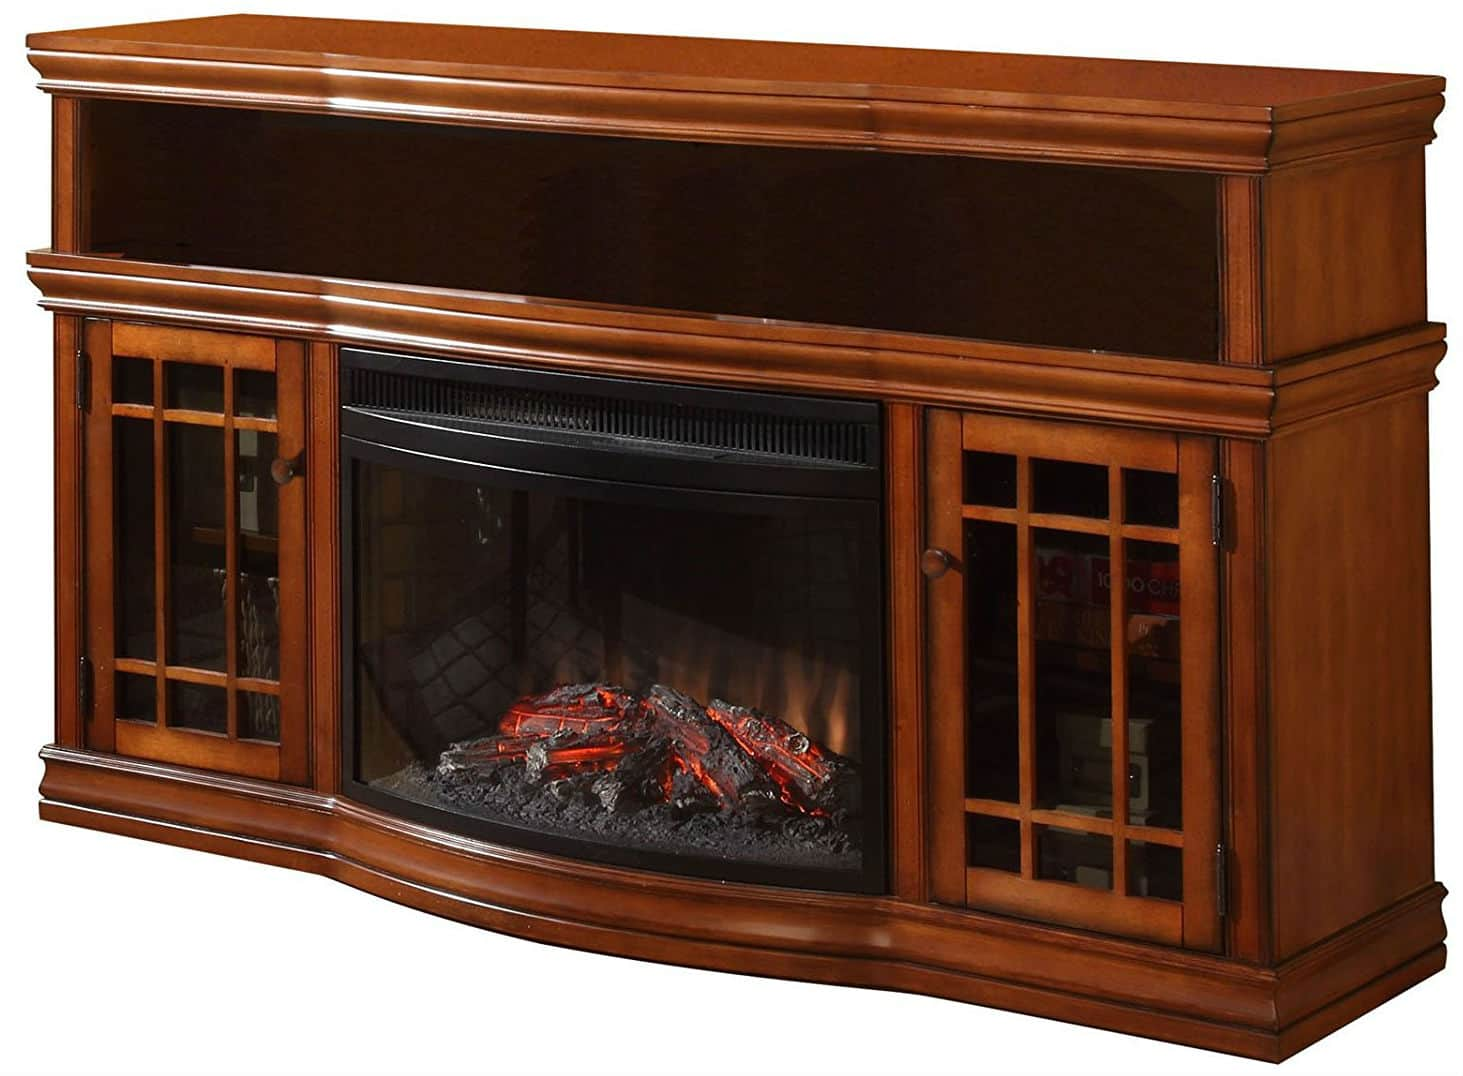 57 inch dwyer tv stand with electric fireplace burnished pecan finished. Black Bedroom Furniture Sets. Home Design Ideas